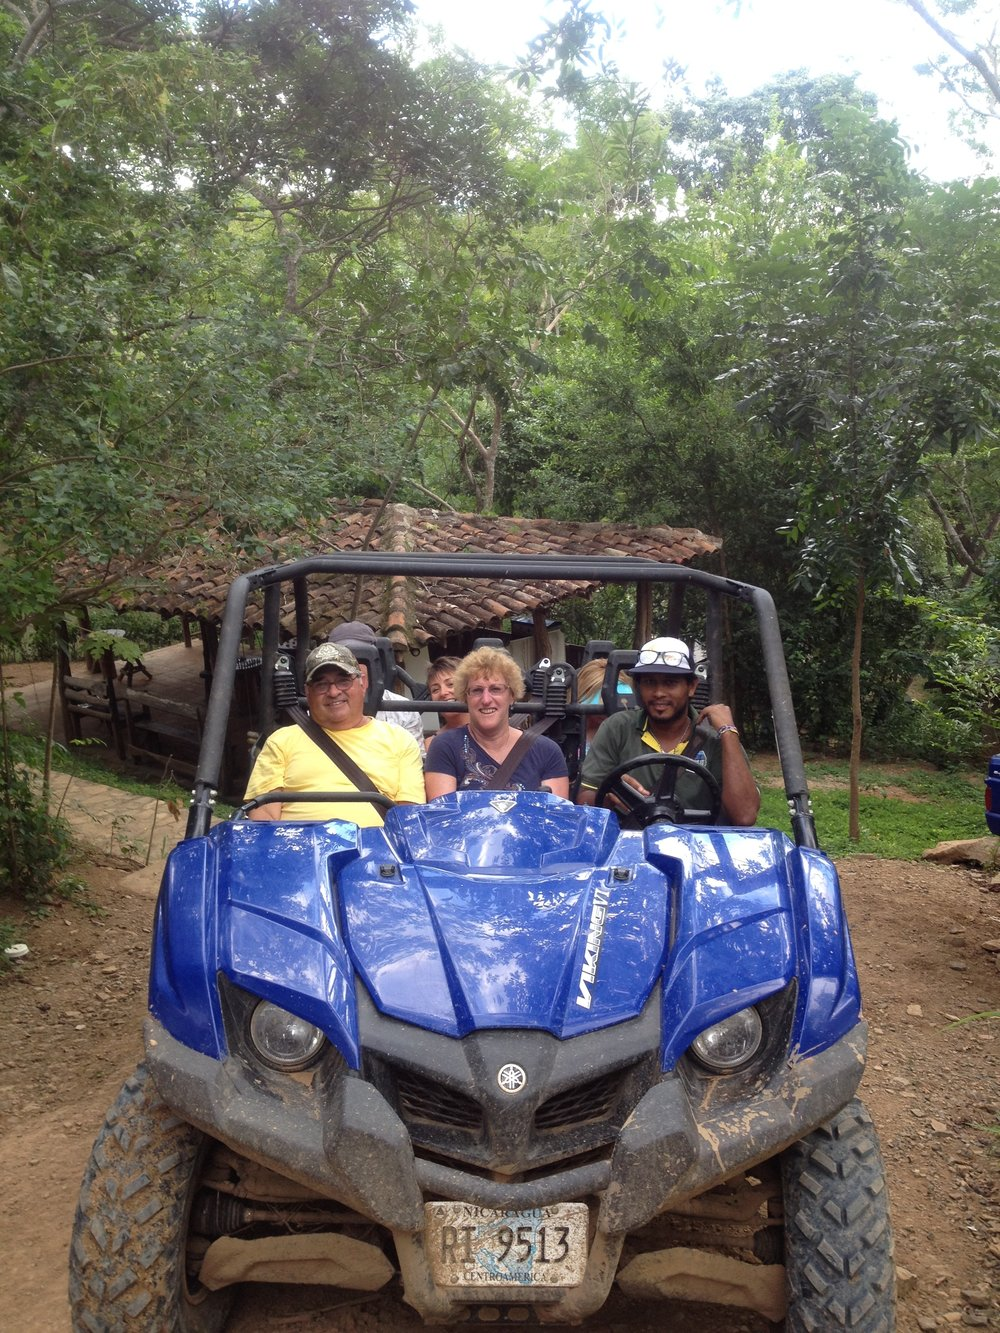 Exciting ATV Ride on your Tour of San Juan del Sur